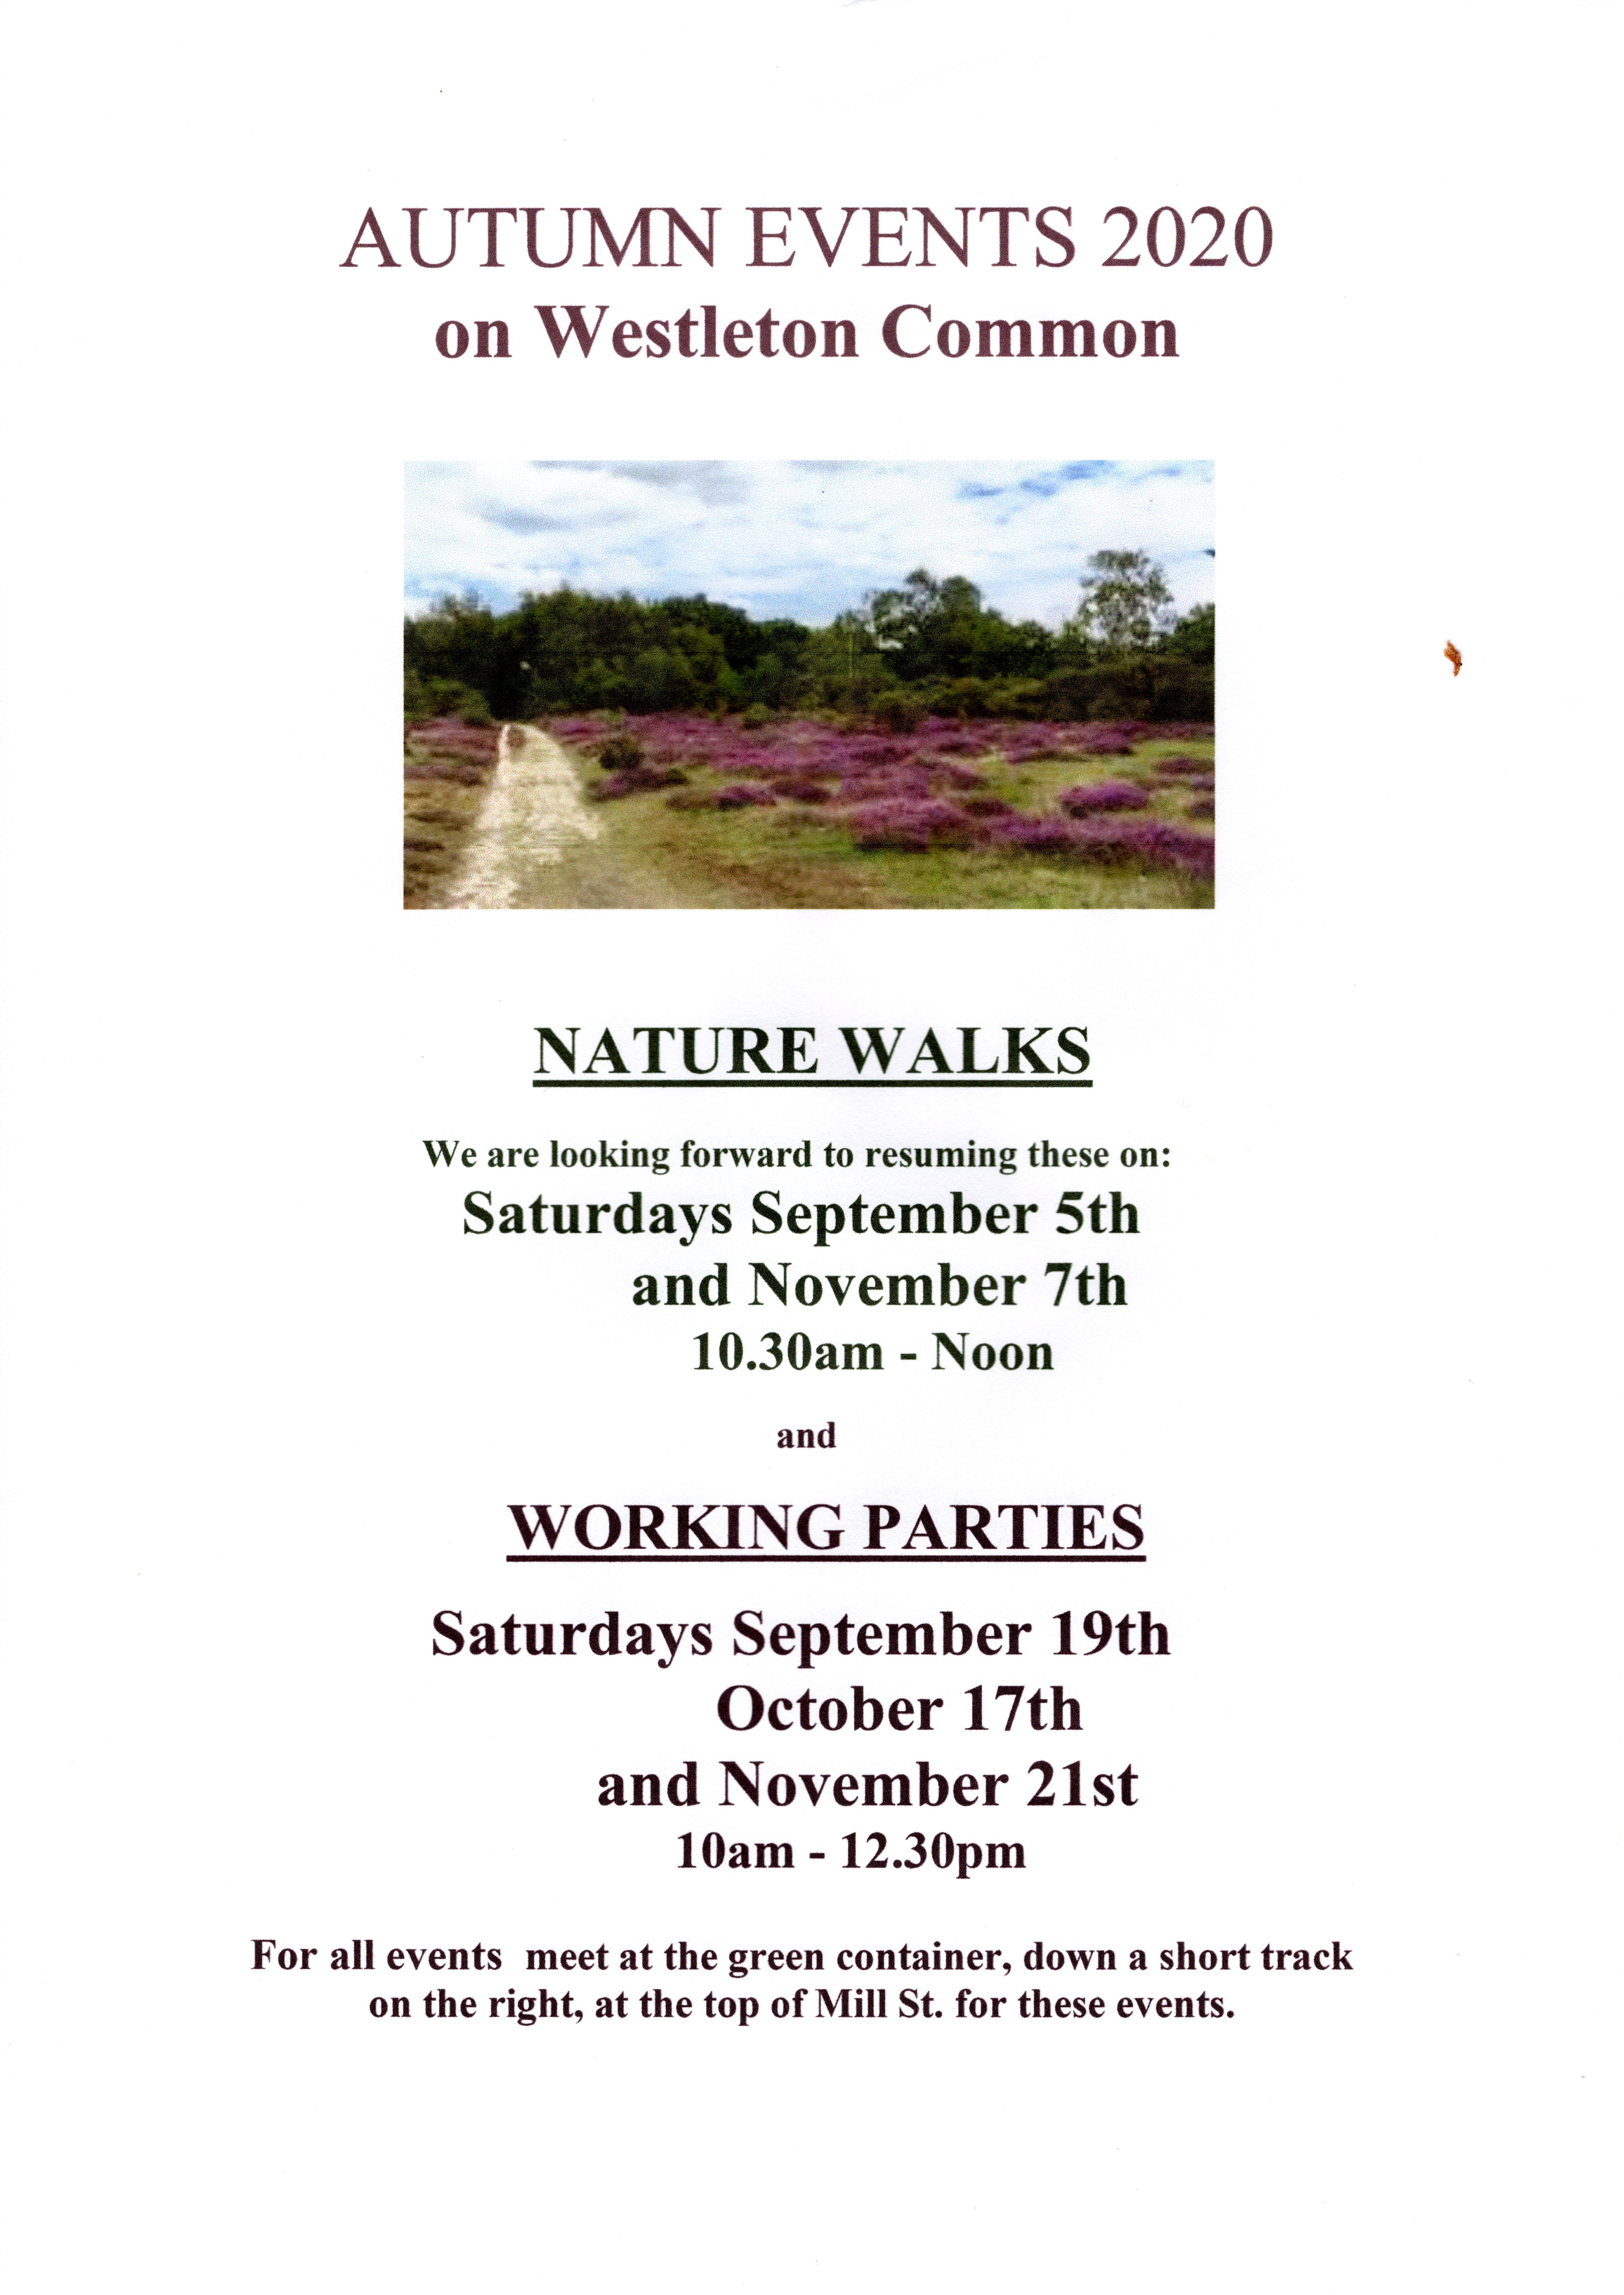 AUTUMN EVENTS 2020 on Westleton Common        NATURE WALKS                                                We are looking forward to resuming these on: Saturdays September 5th           and November 7th          10.30am - Noon                and                  WORKING PARTIES 	            Saturdays September 19th             October 17th         and November 21st          10am - 12.30pm  For all events  meet at the green container, down a short track on the right, at the top of Mill St. for these events.